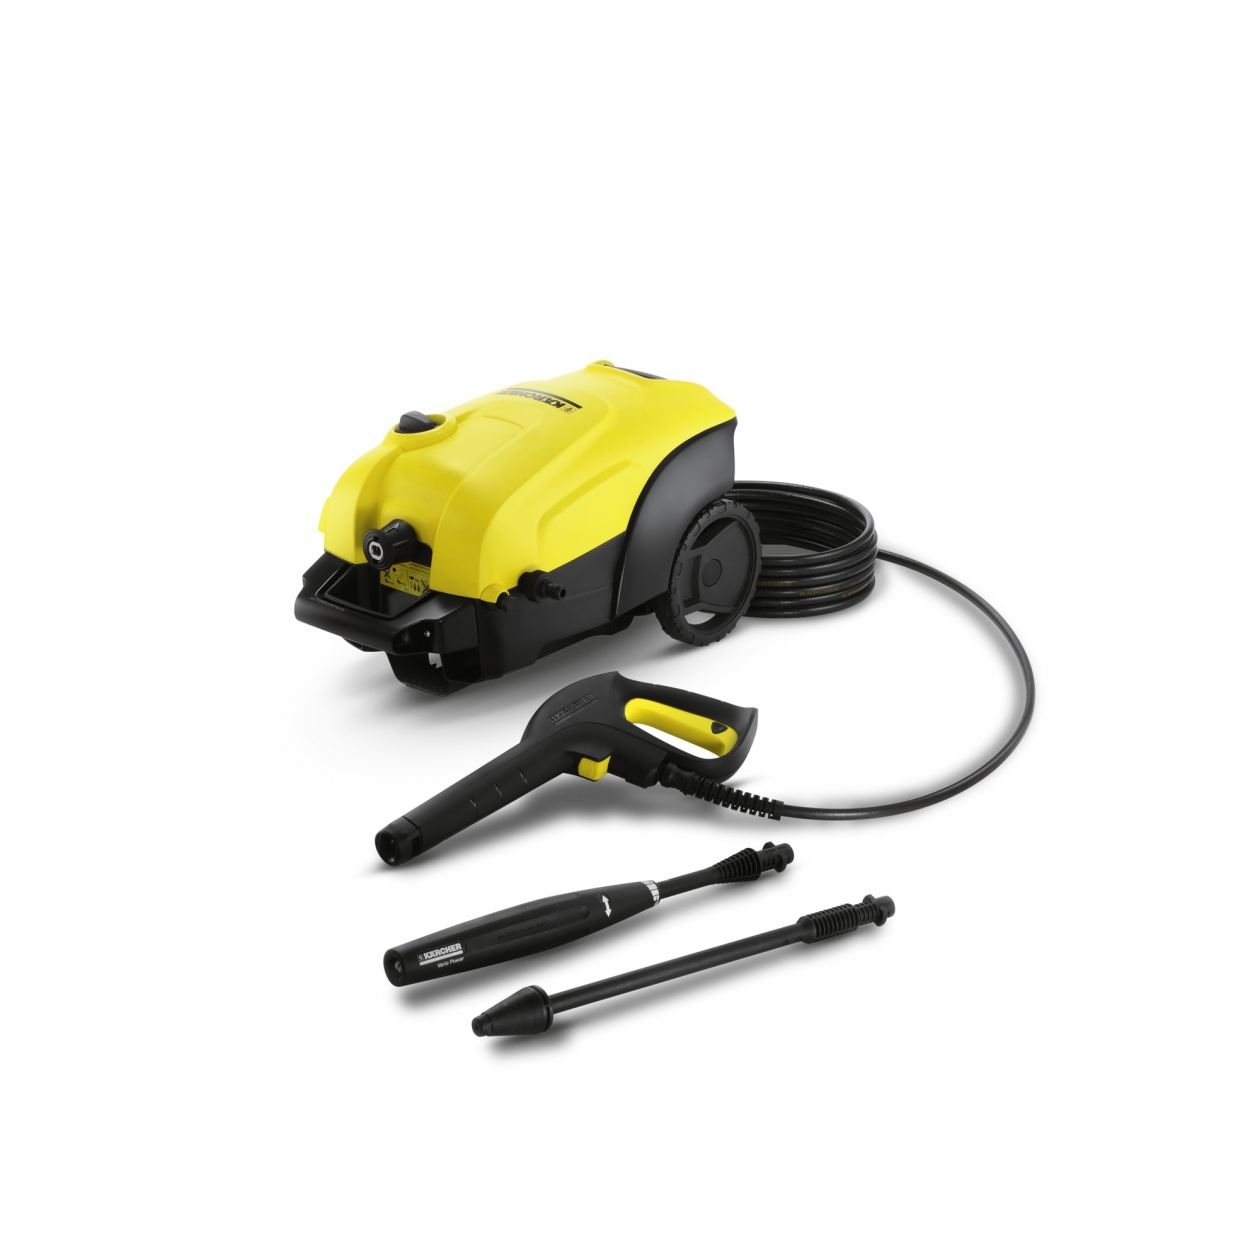 Karcher 720 Mx pressure washer Manual